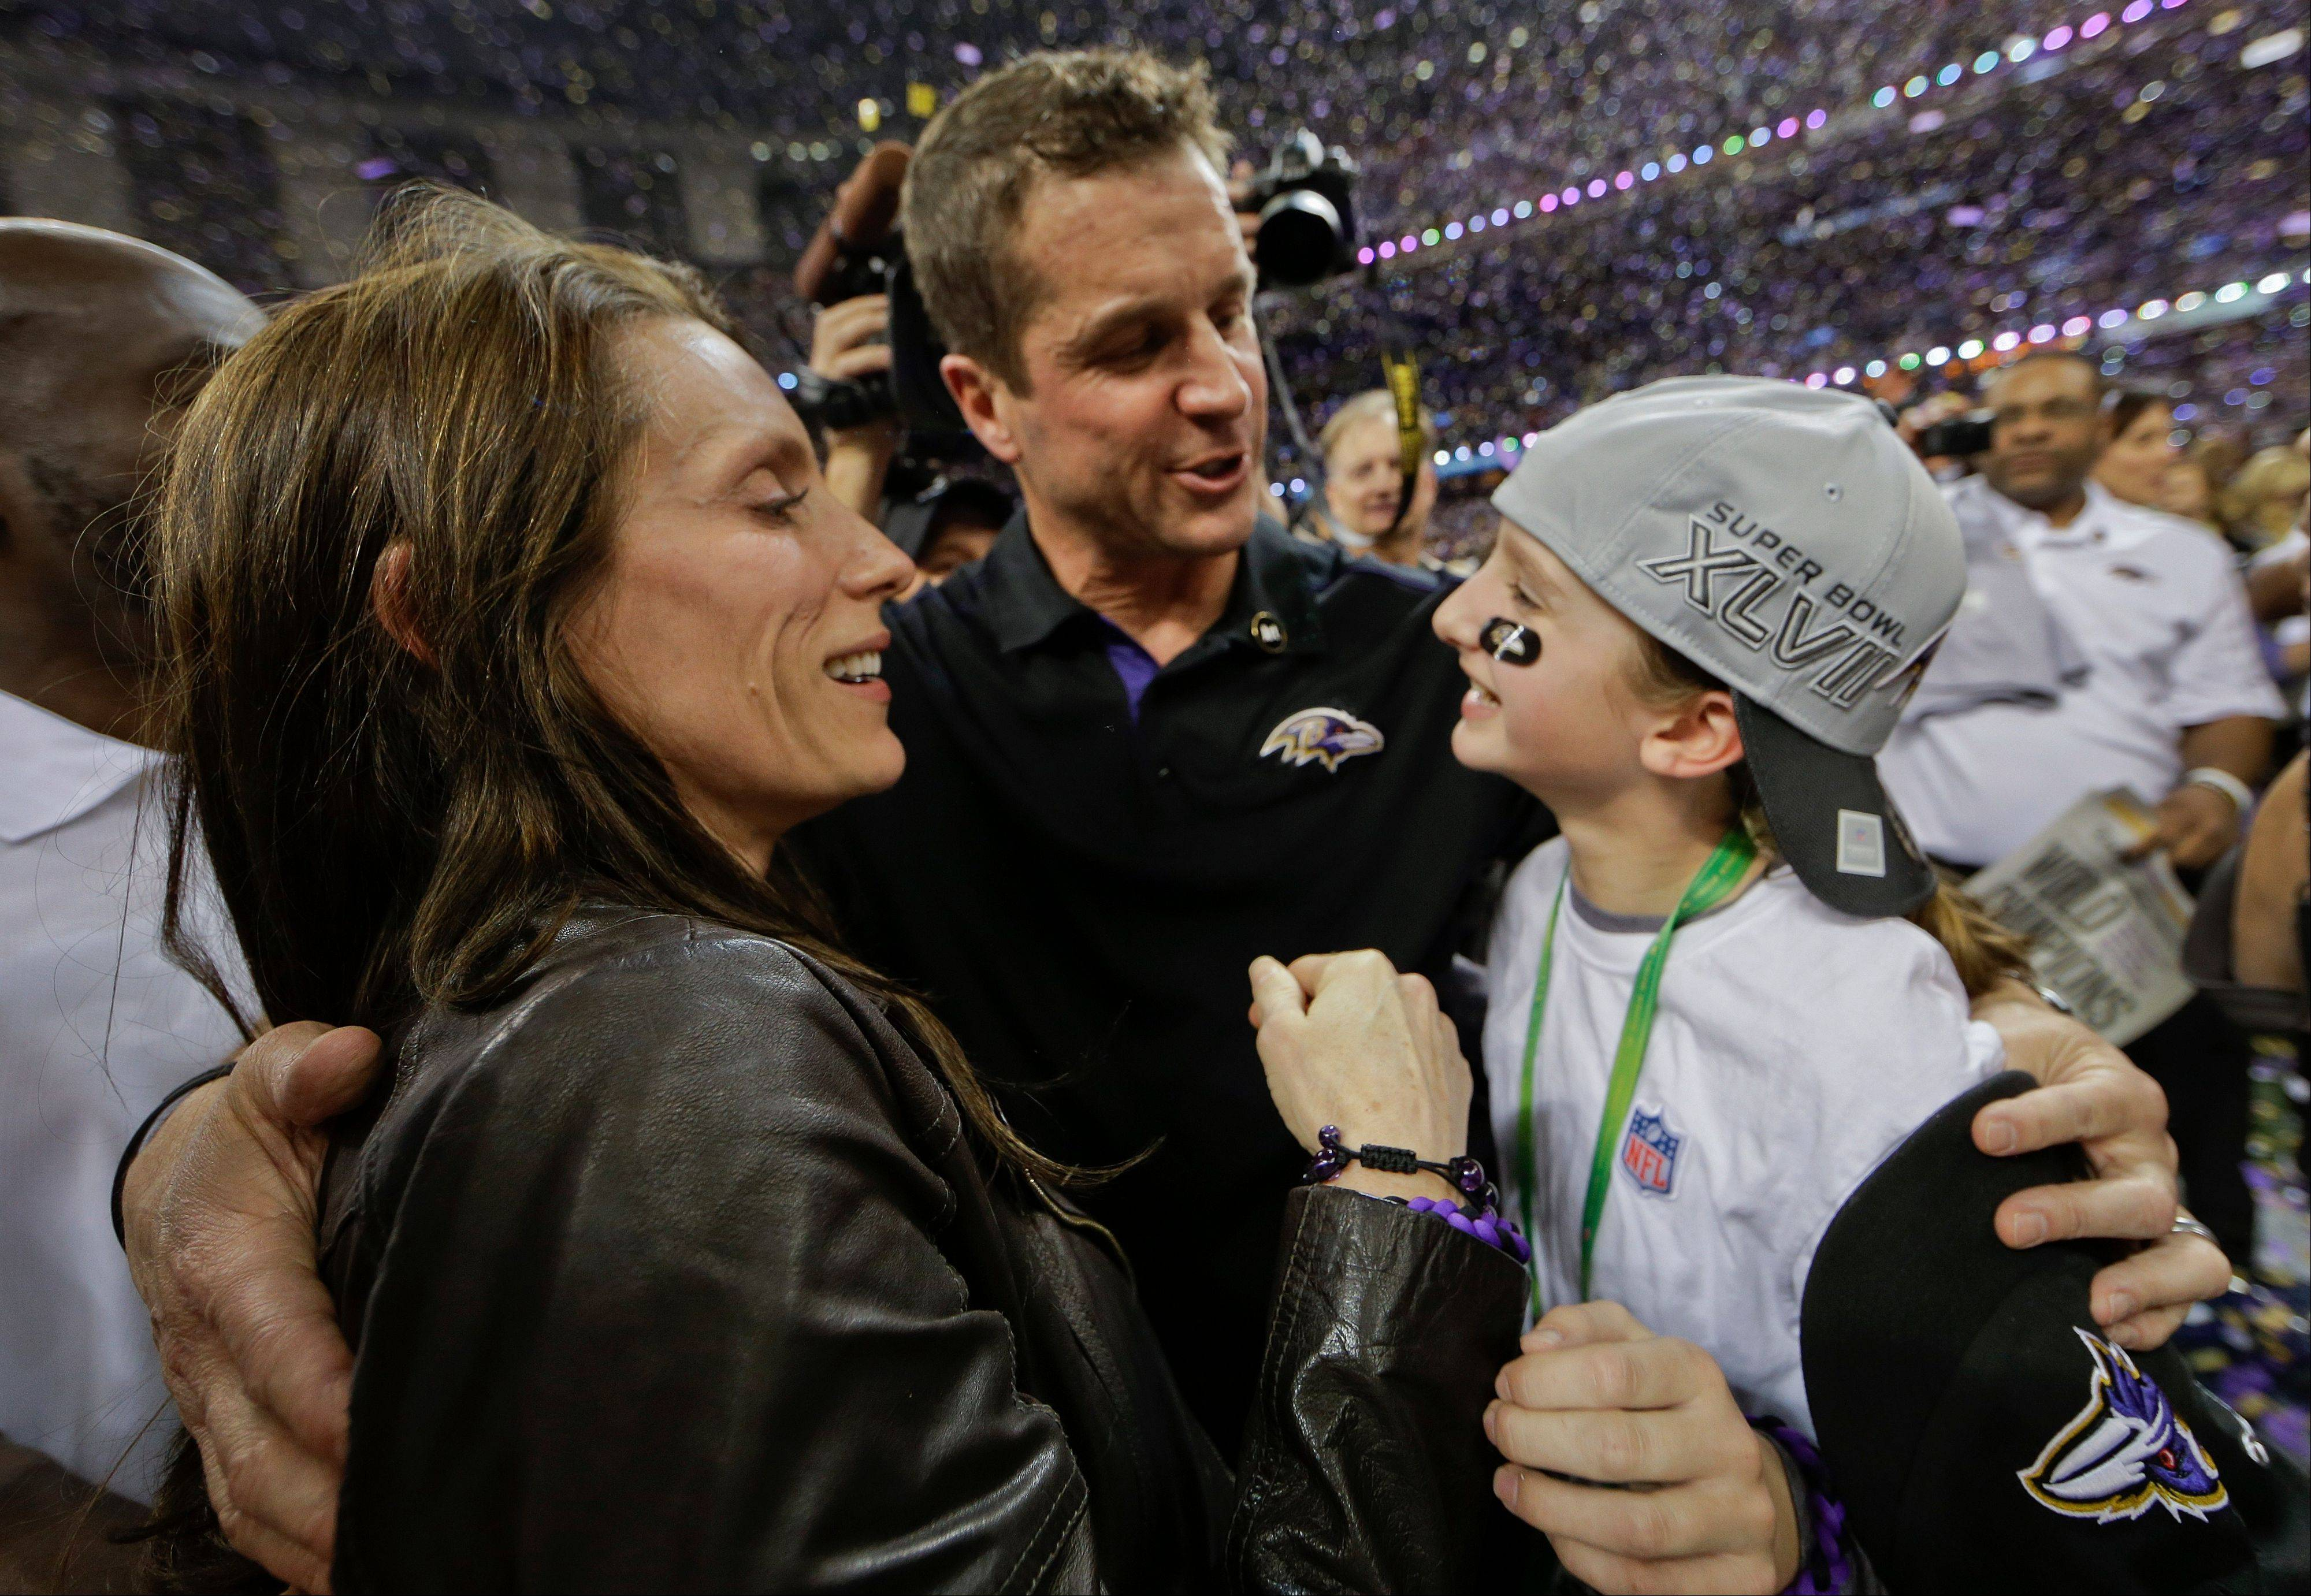 Baltimore Ravens head coach John Harbaugh hugs his wife, Ingrid, and daughter, Alison, after defeating the San Francisco 49ers 34-31 in the Super Bowl.